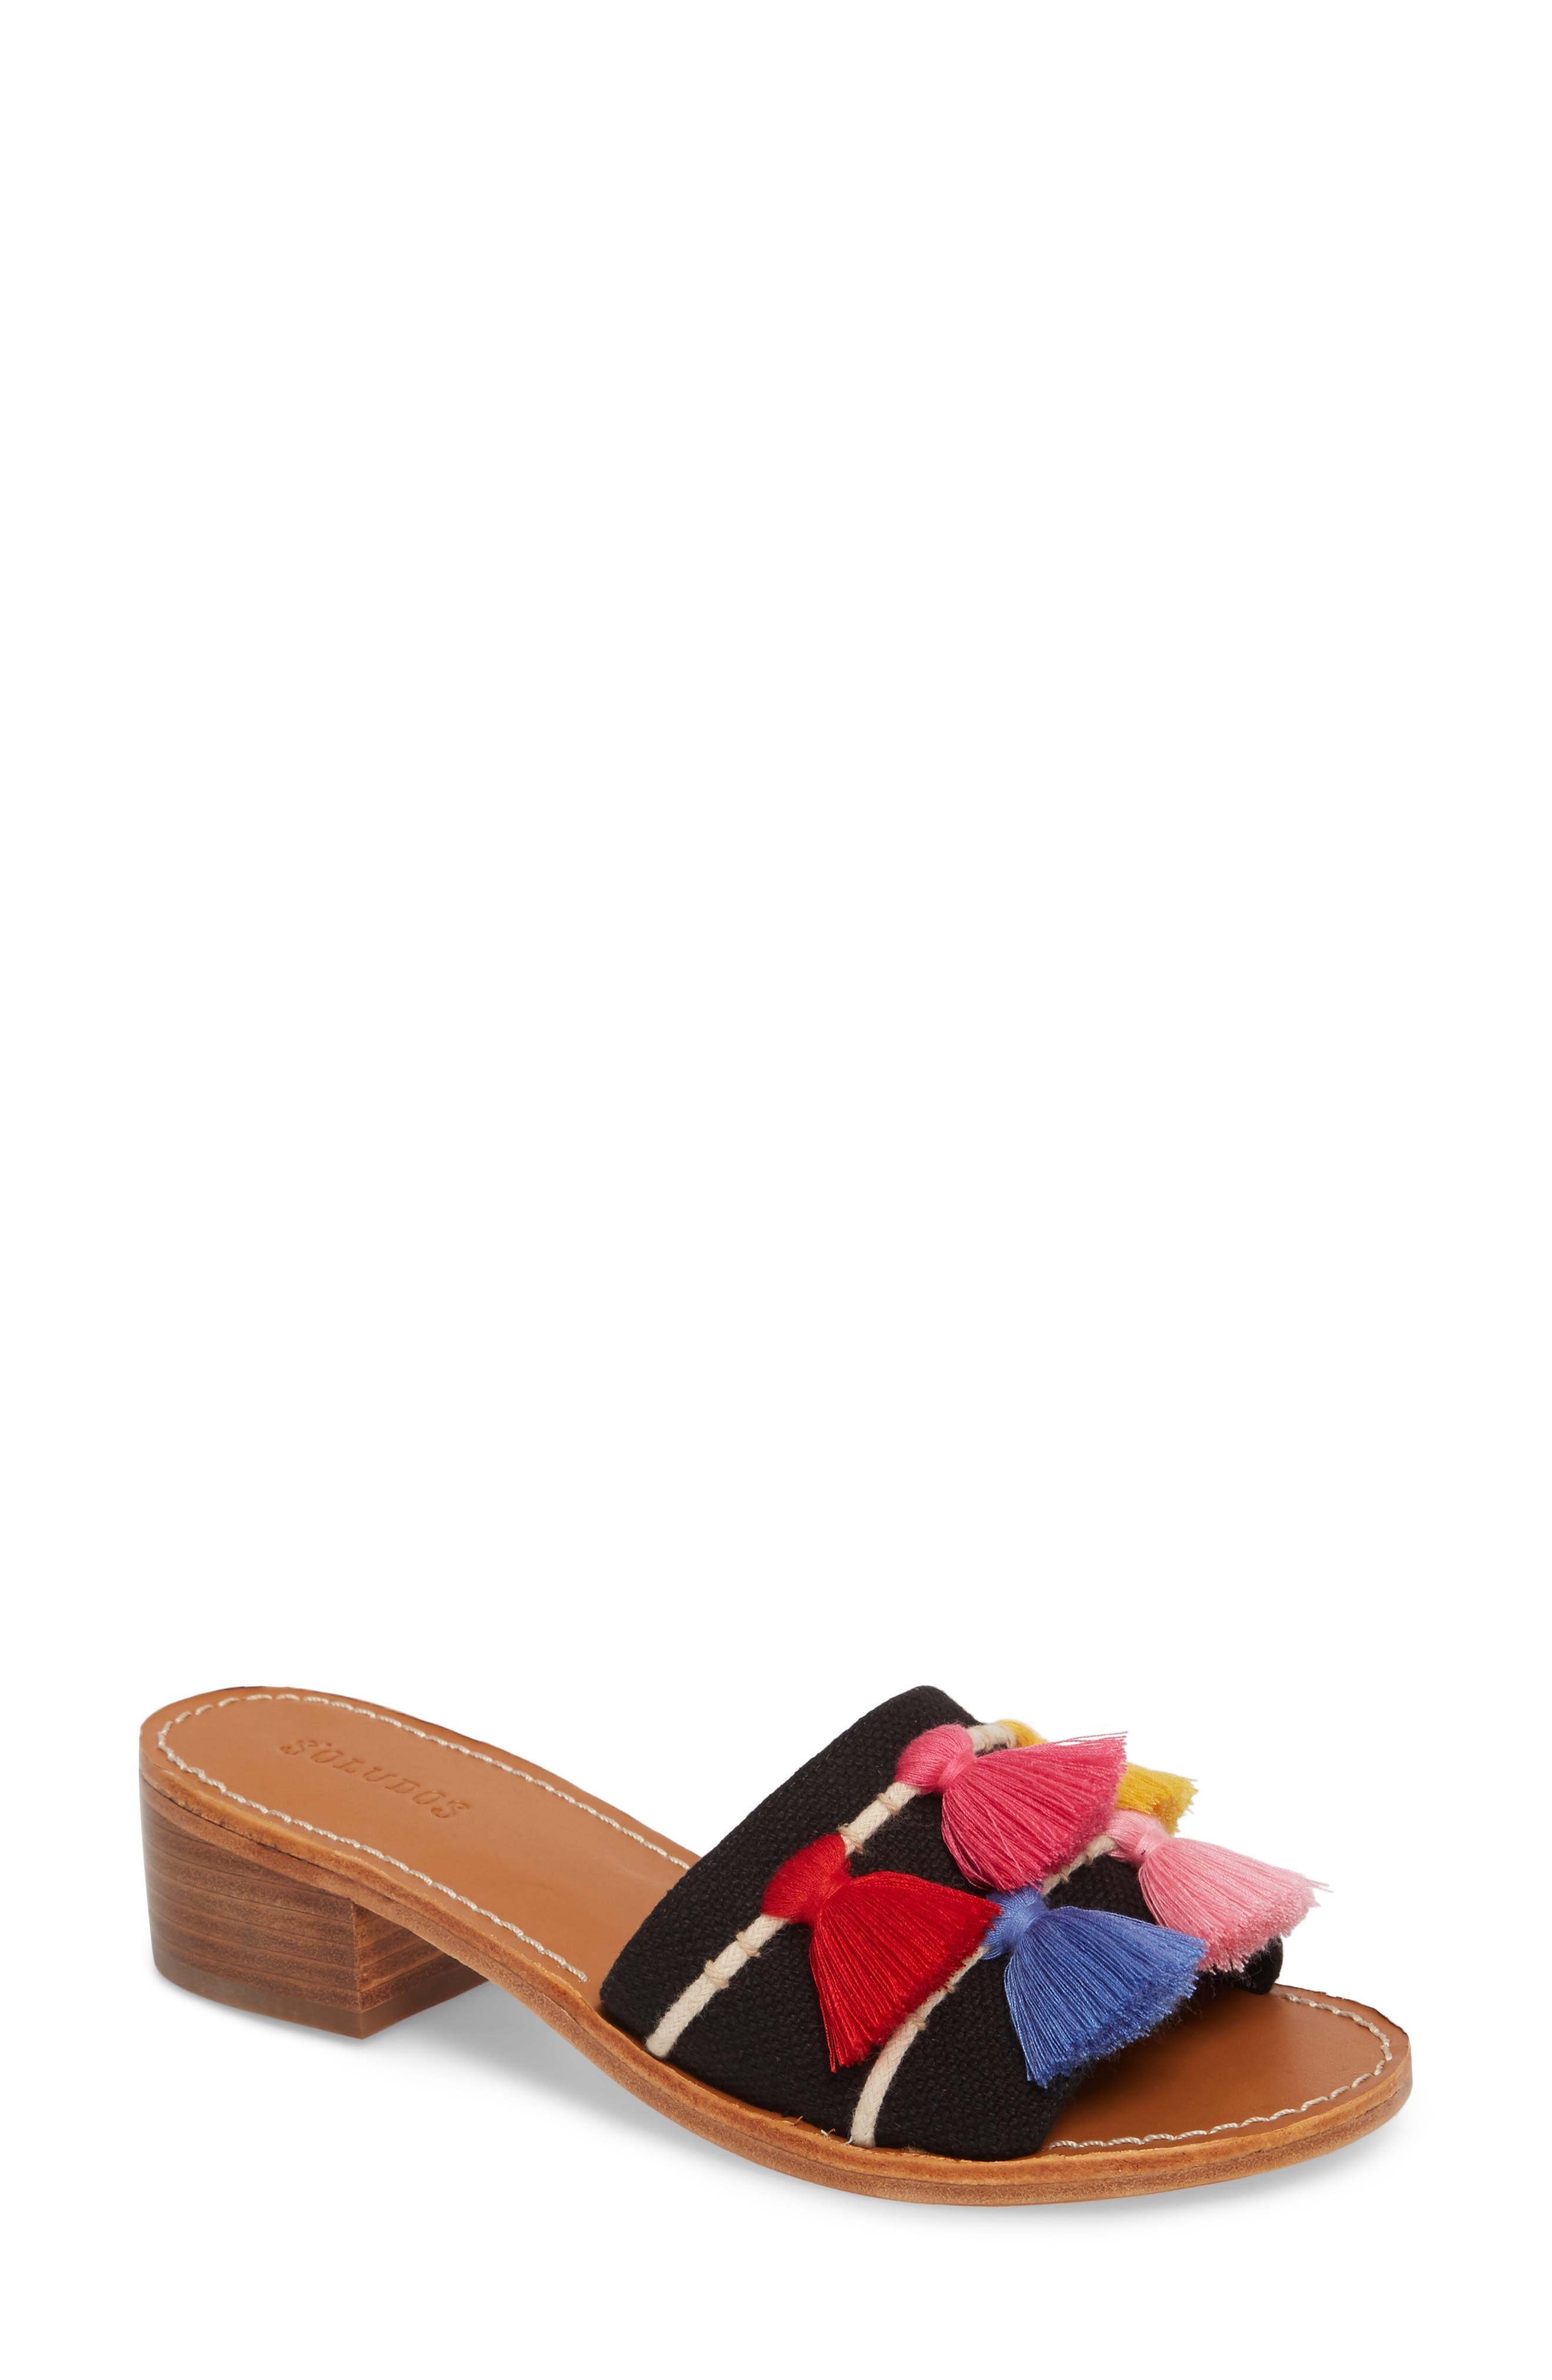 Main Image - Soludos Tassel City Sandal (Women)